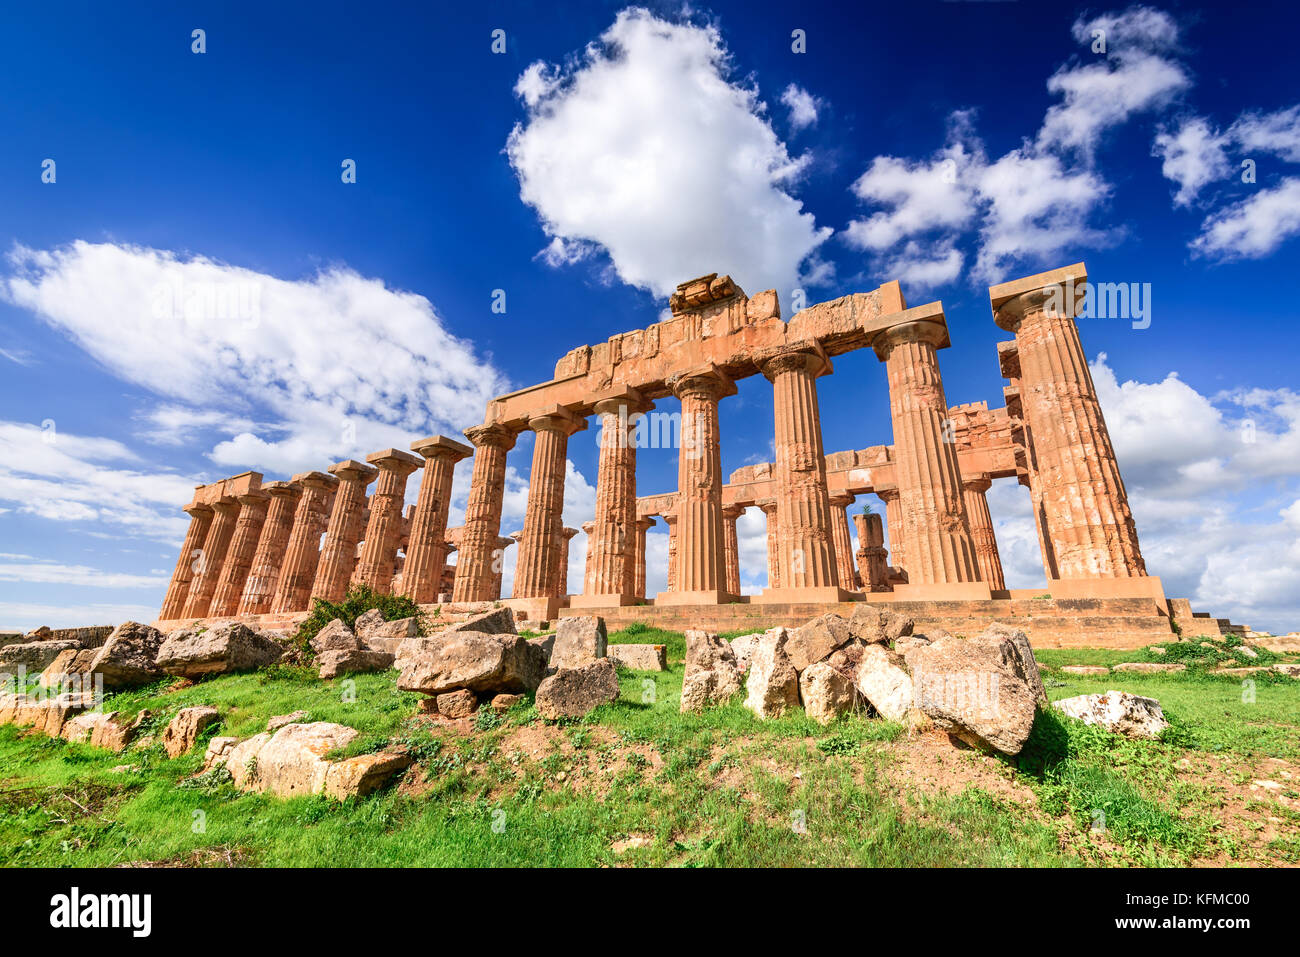 Selinunte was an ancient Greek city on the south-western coast of Sicily in Italy. Temple of Hera ruins of Doric - Stock Image